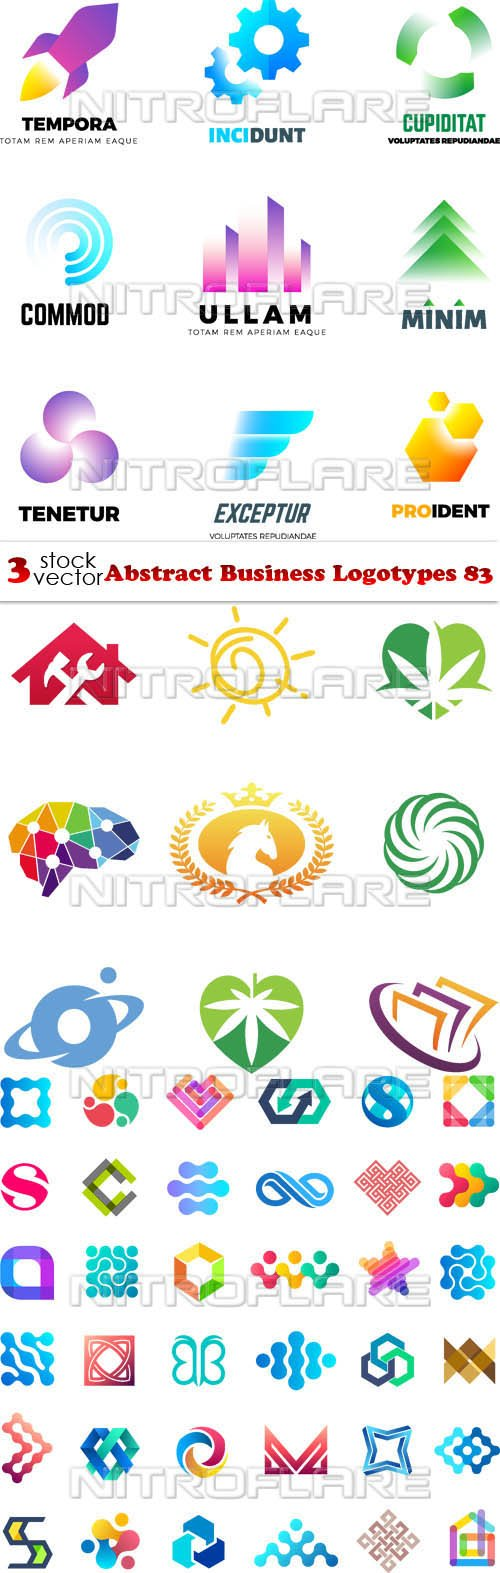 Vectors - Abstract Business Logotypes 83